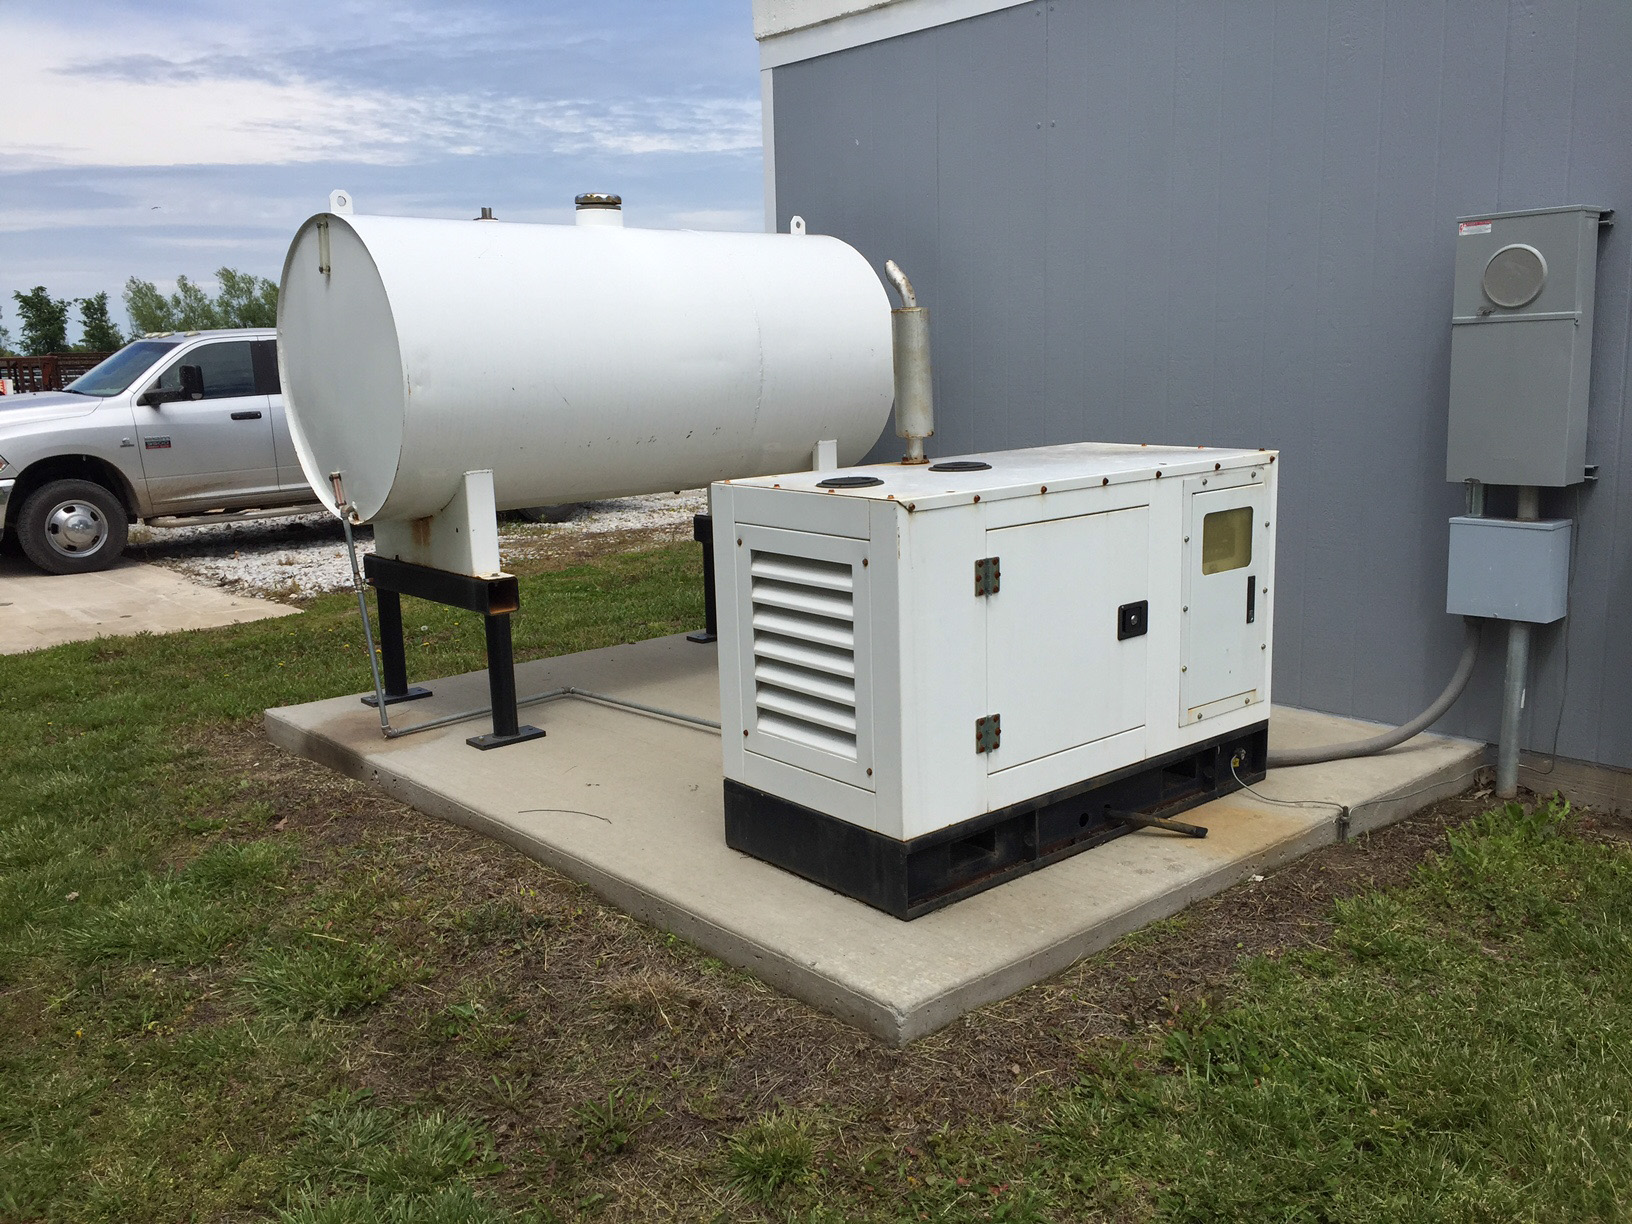 New 16 KW Perkins Diesel Generators & Tank Tower Direct